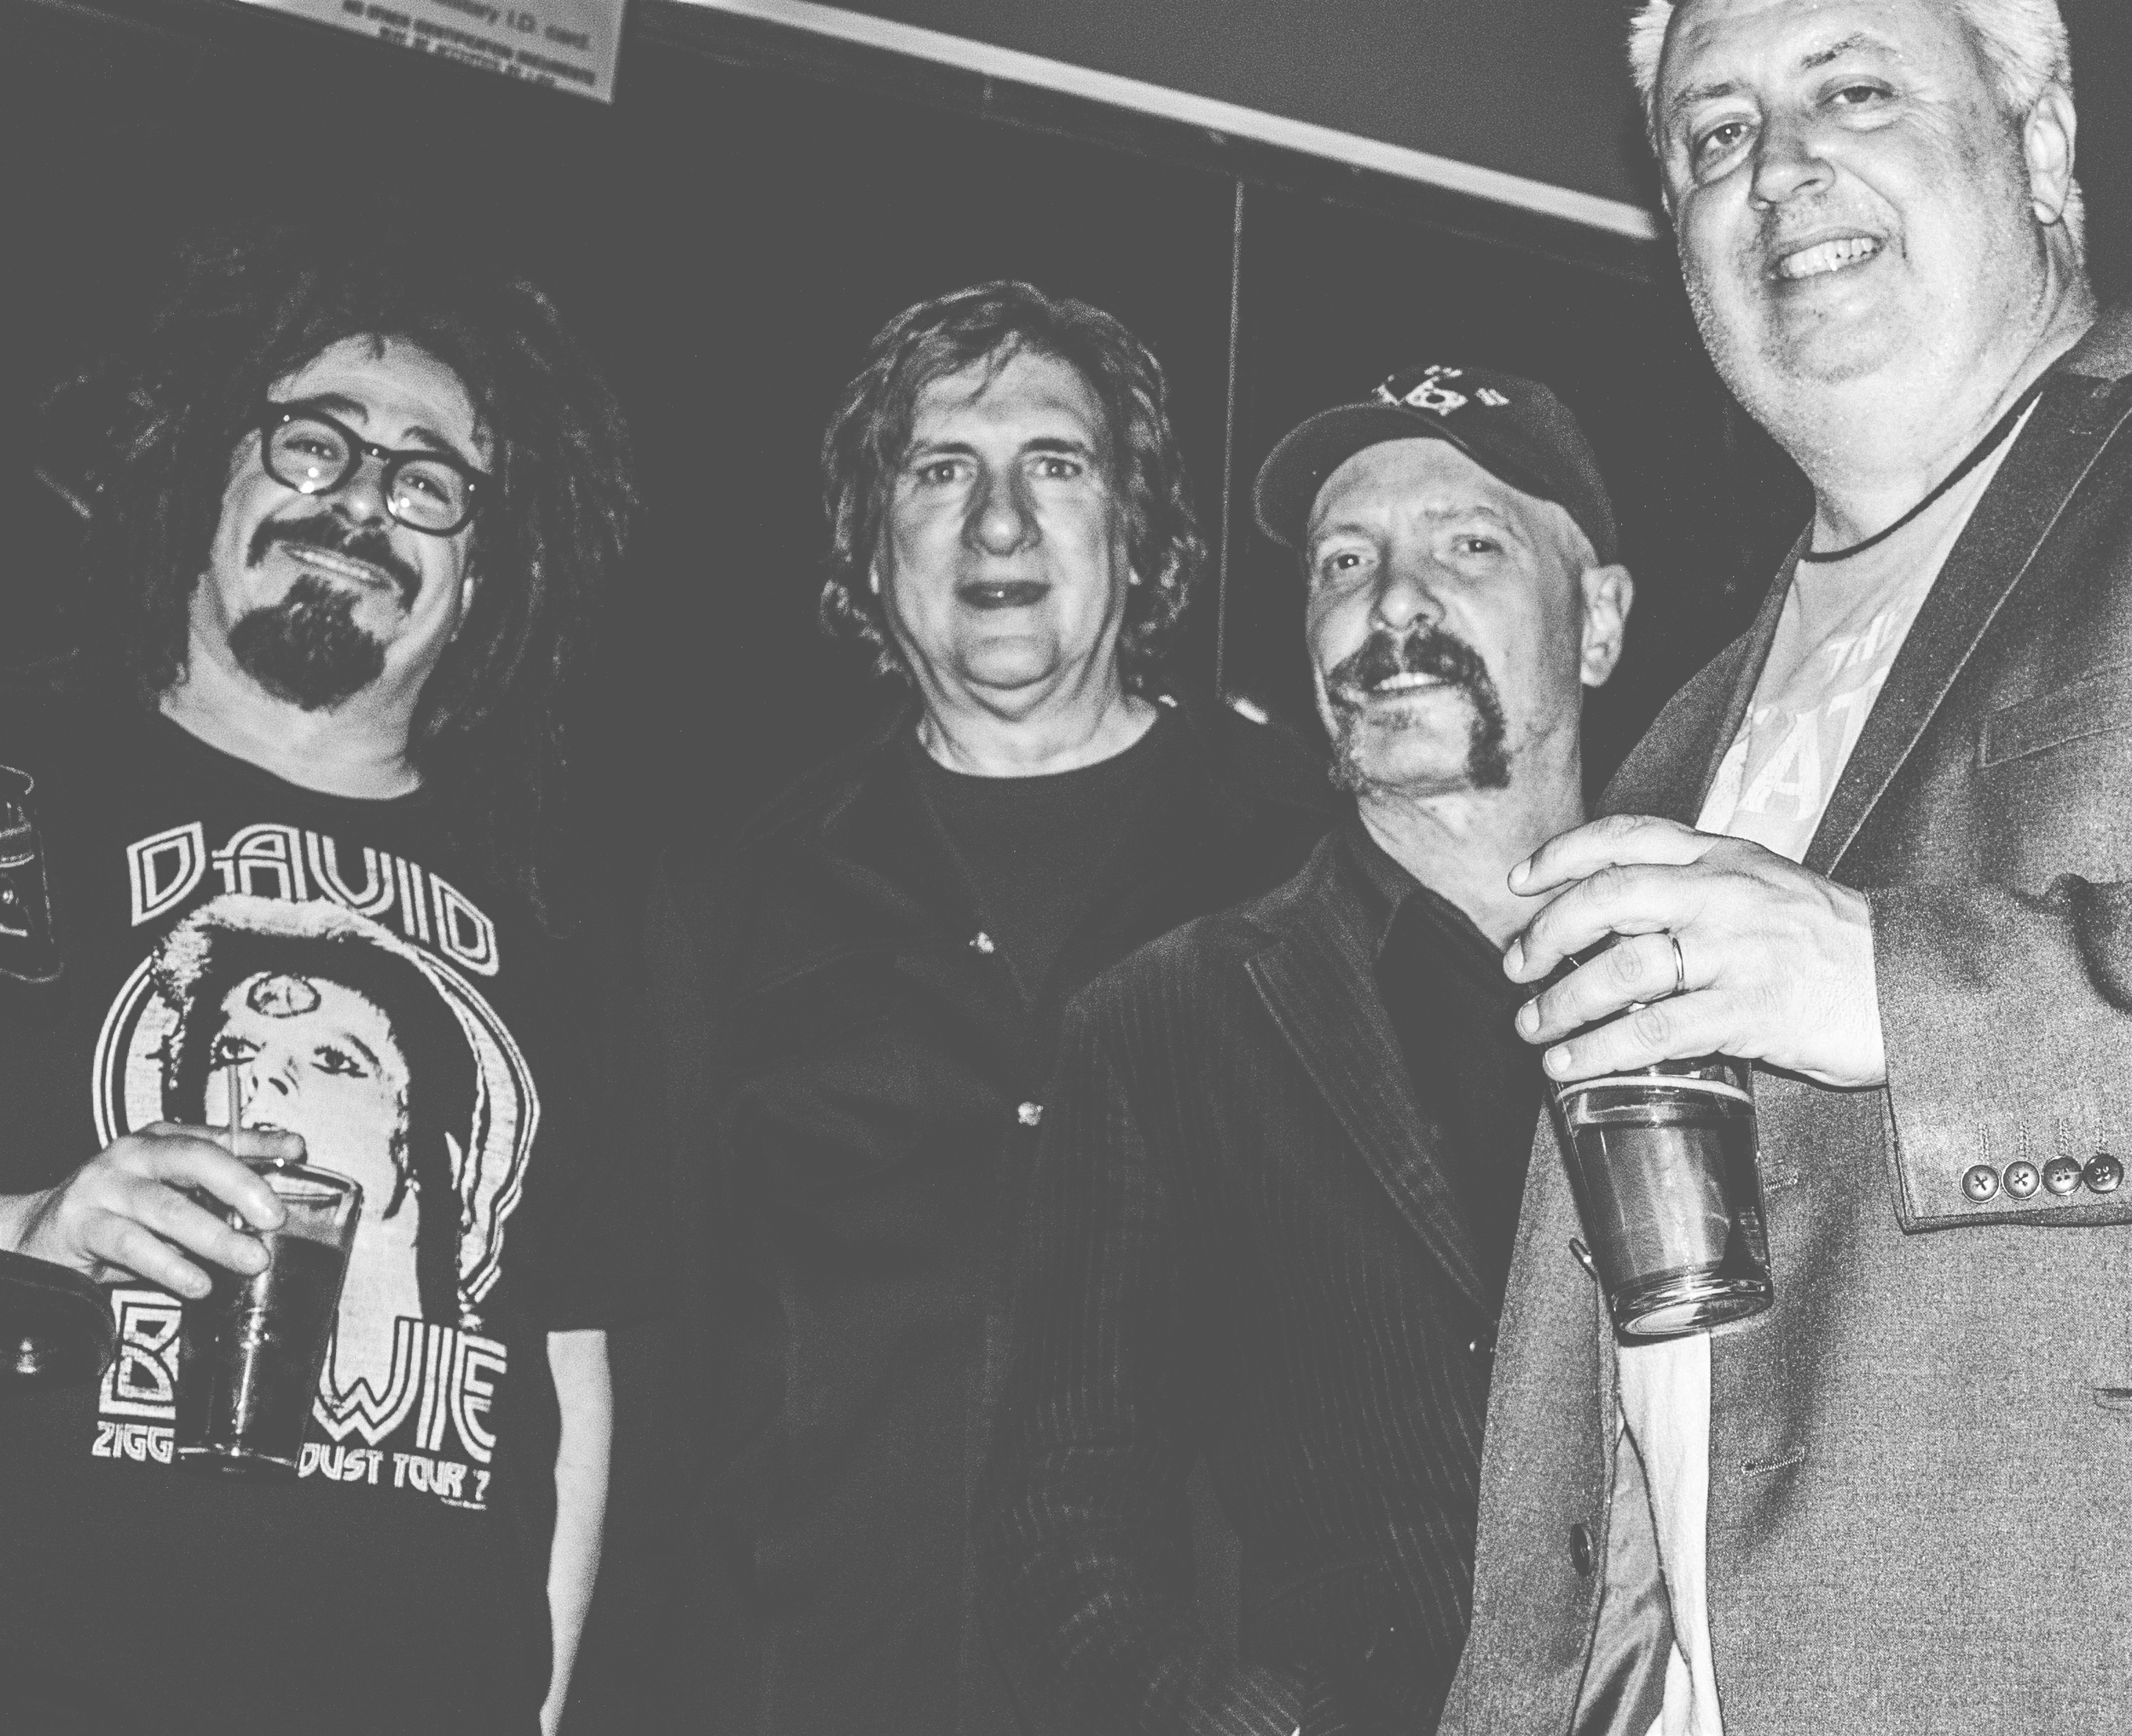 With Adam Duritz, Sal Maida and Frank Funaro after a show in NYC